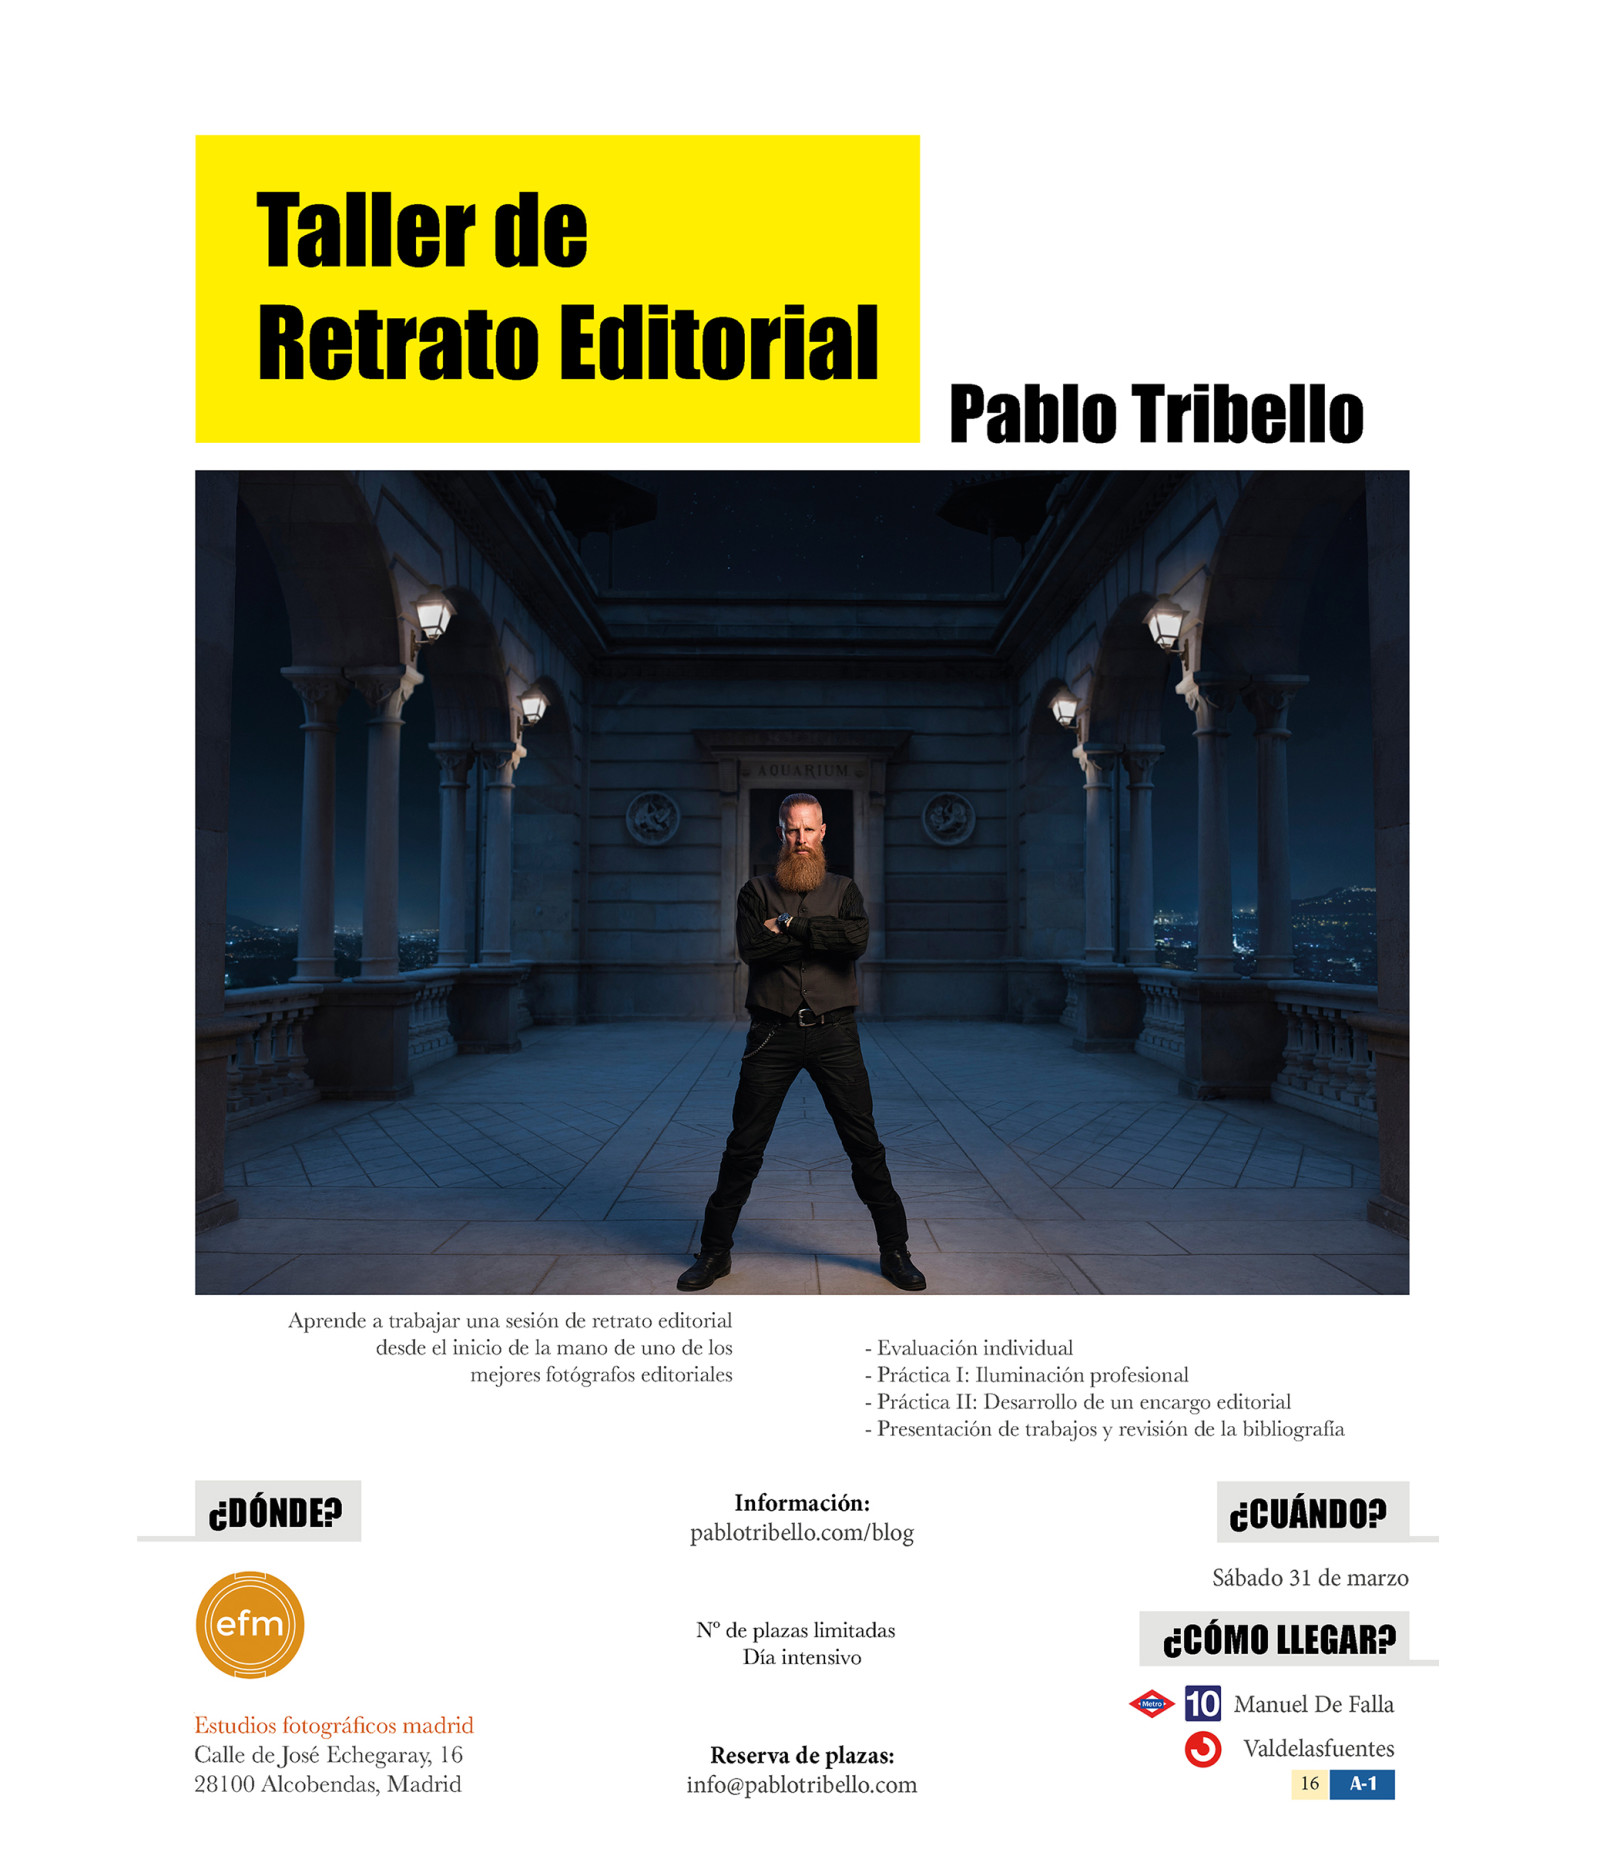 Taller de retrato editorial madrid